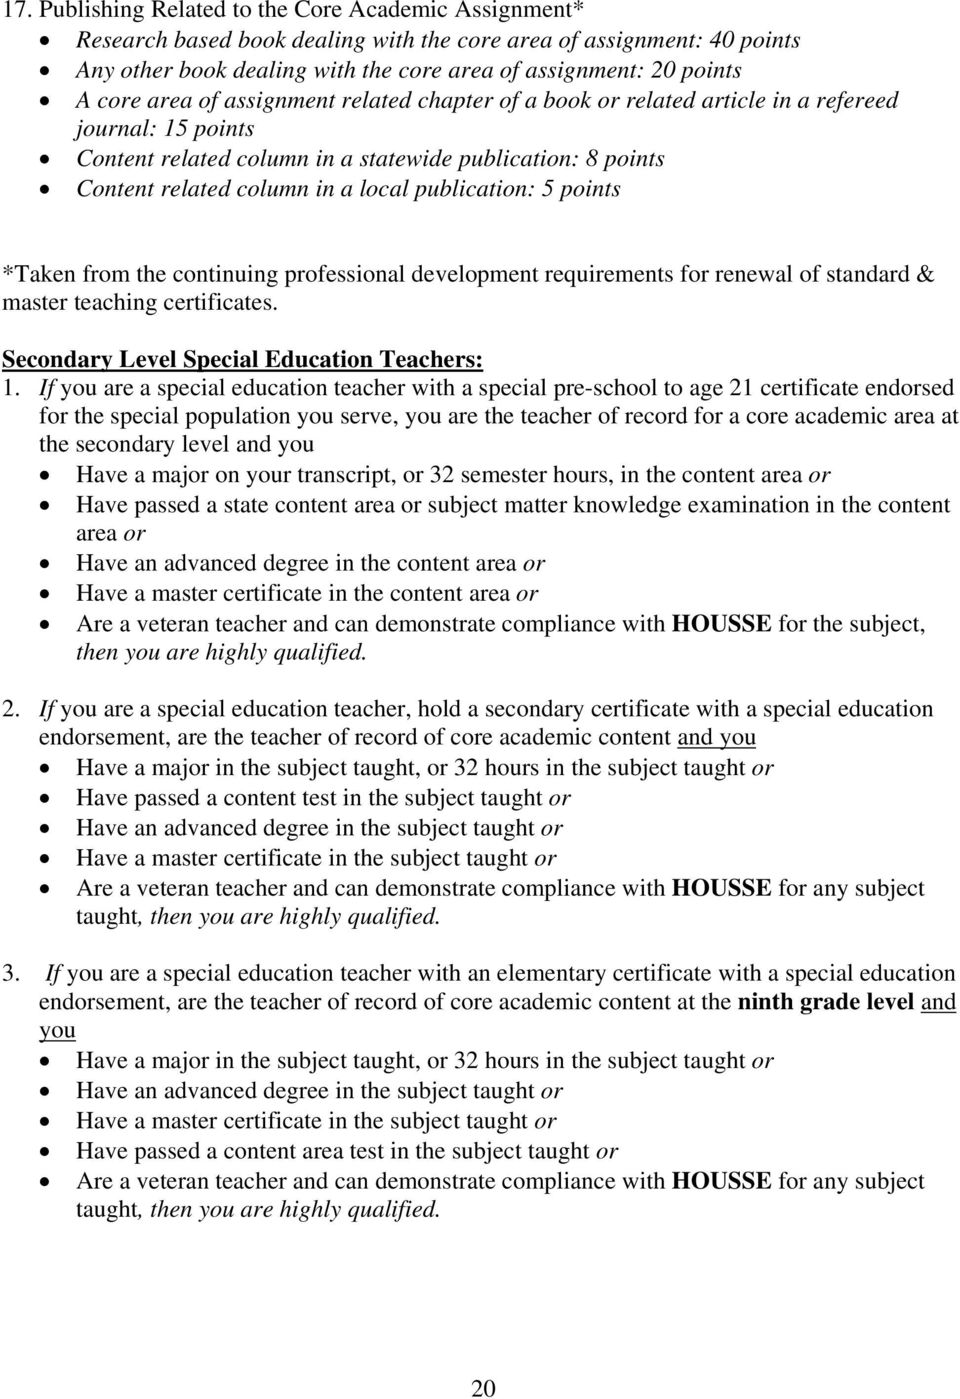 publication: 5 points *Taken from the continuing professional development requirements for renewal of standard & master teaching certificates. Secondary Level Special Education Teachers: 1.